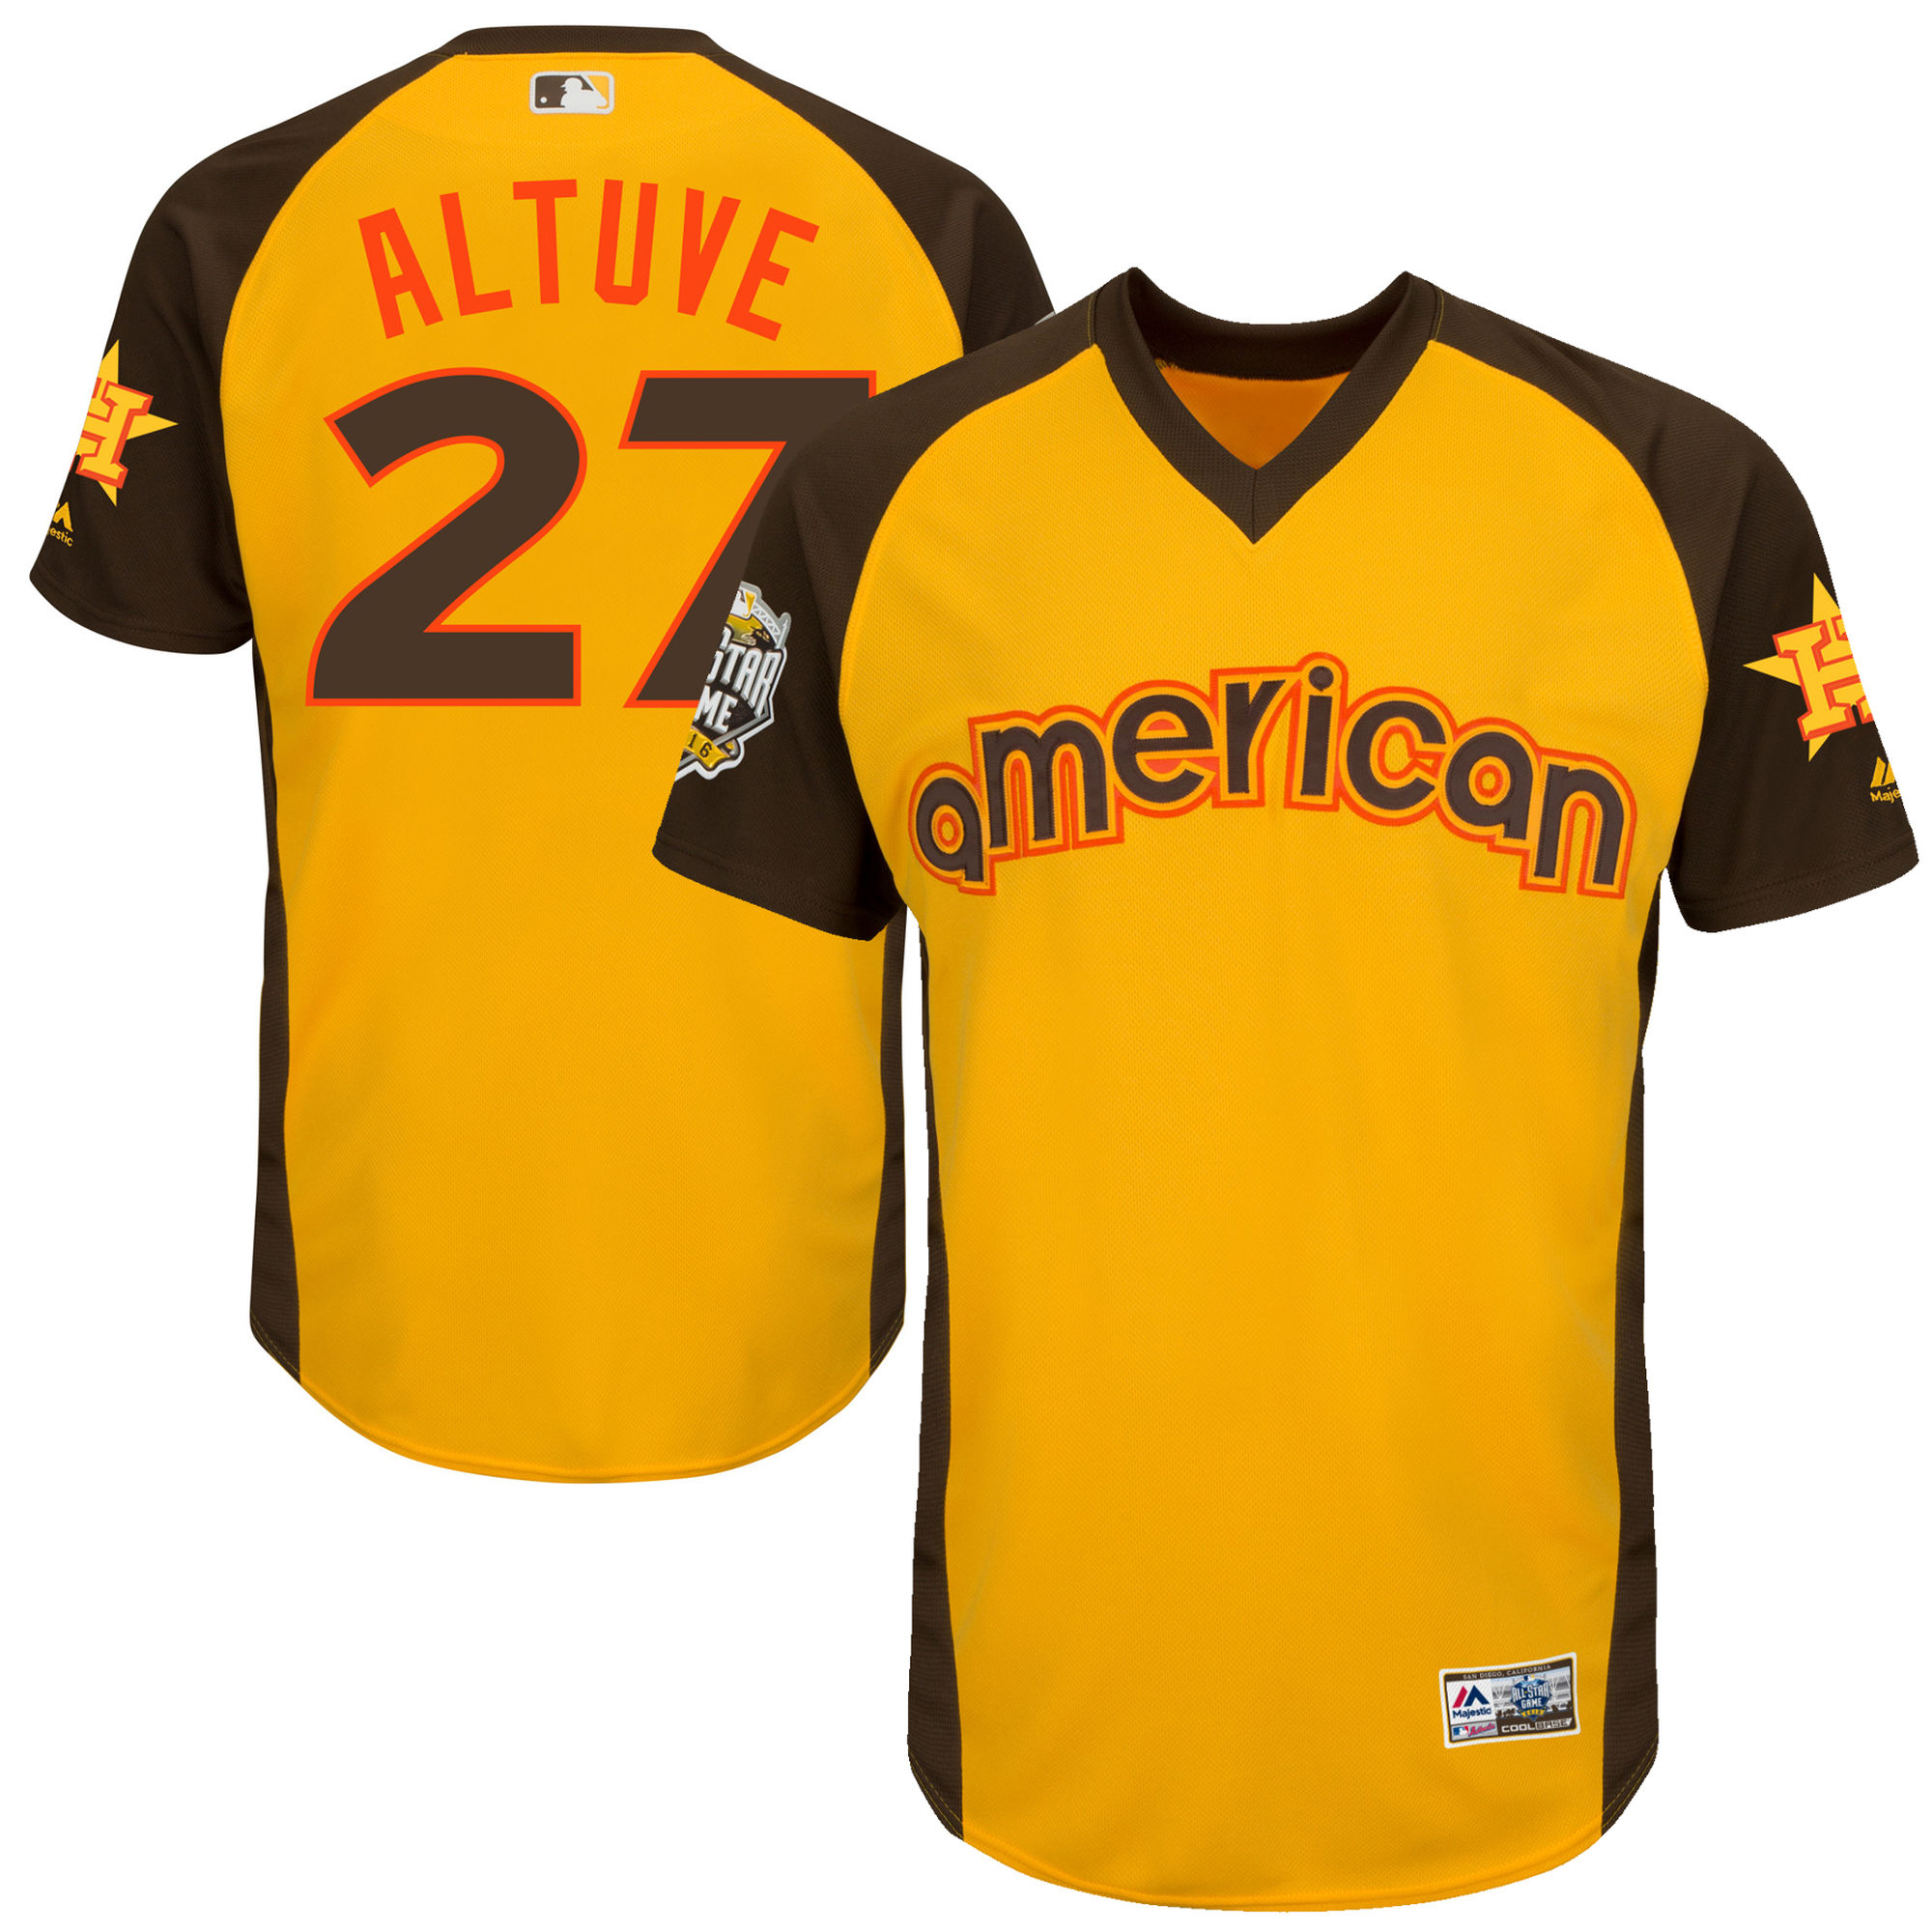 Angels 27 Mike Trout Yellow Youth 2016 All-Star Game Cool Base Batting Practice Player Jersey